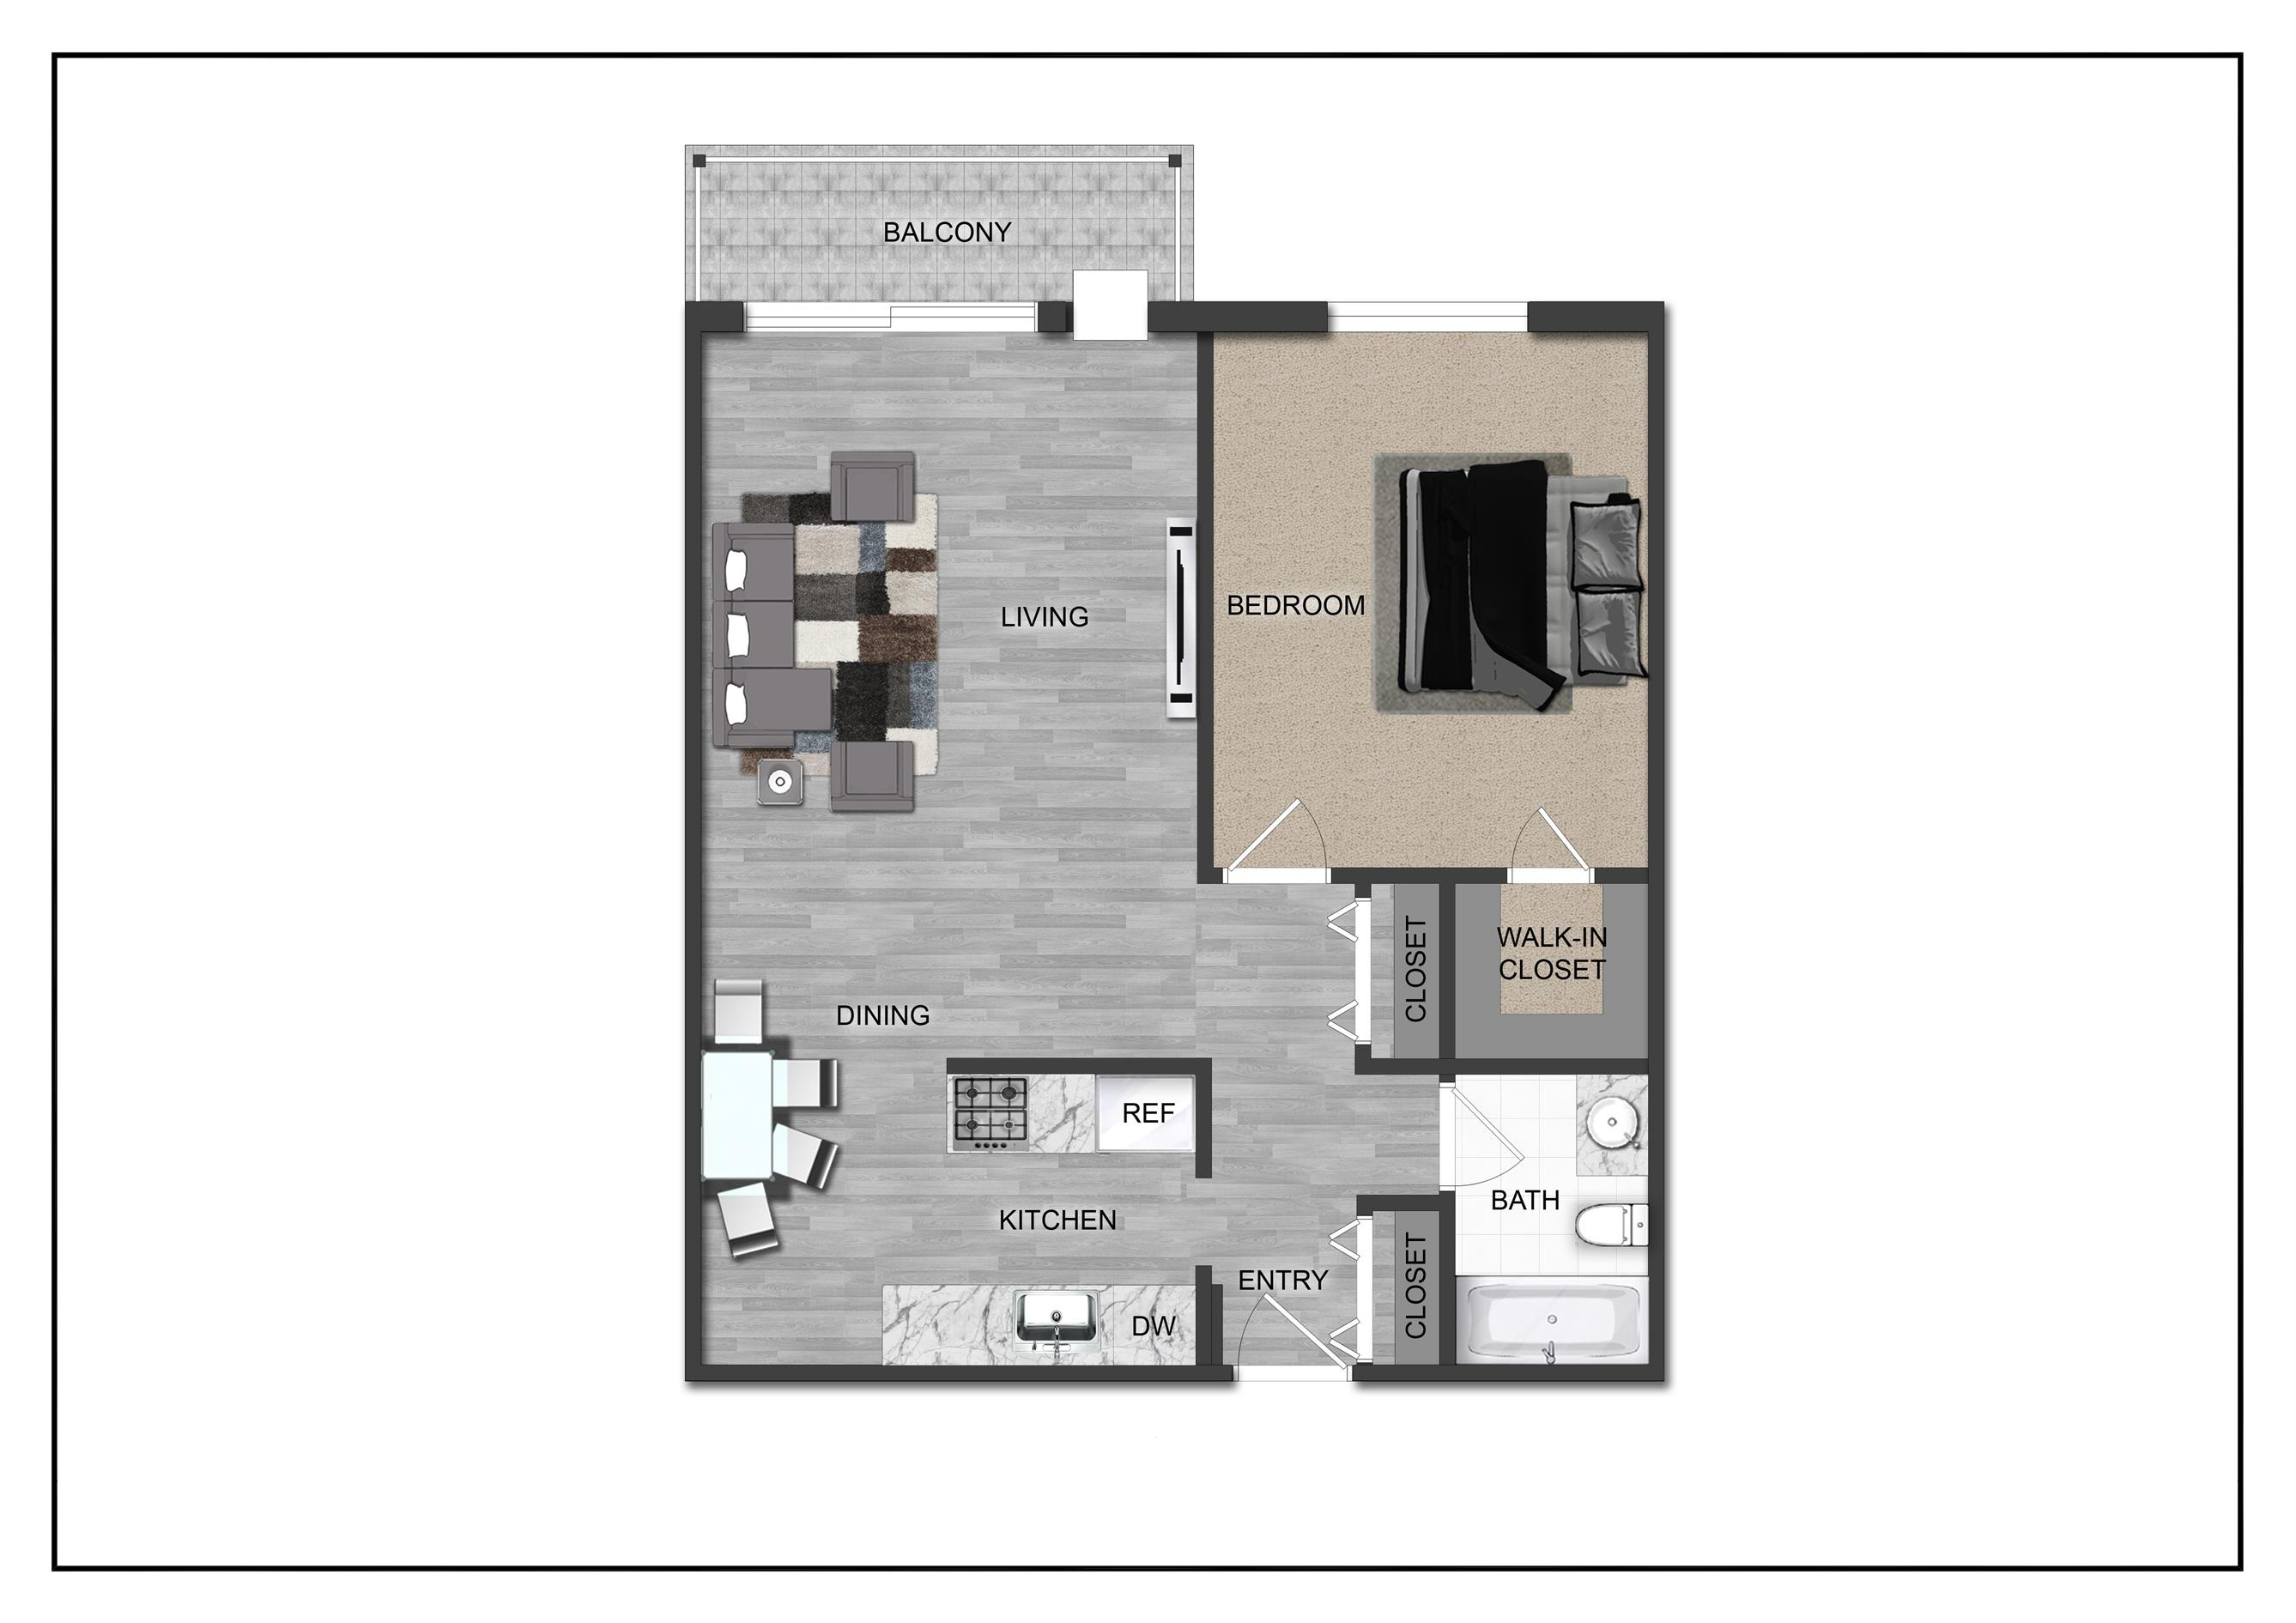 Image of 3020 Sumter Ave N, # 3